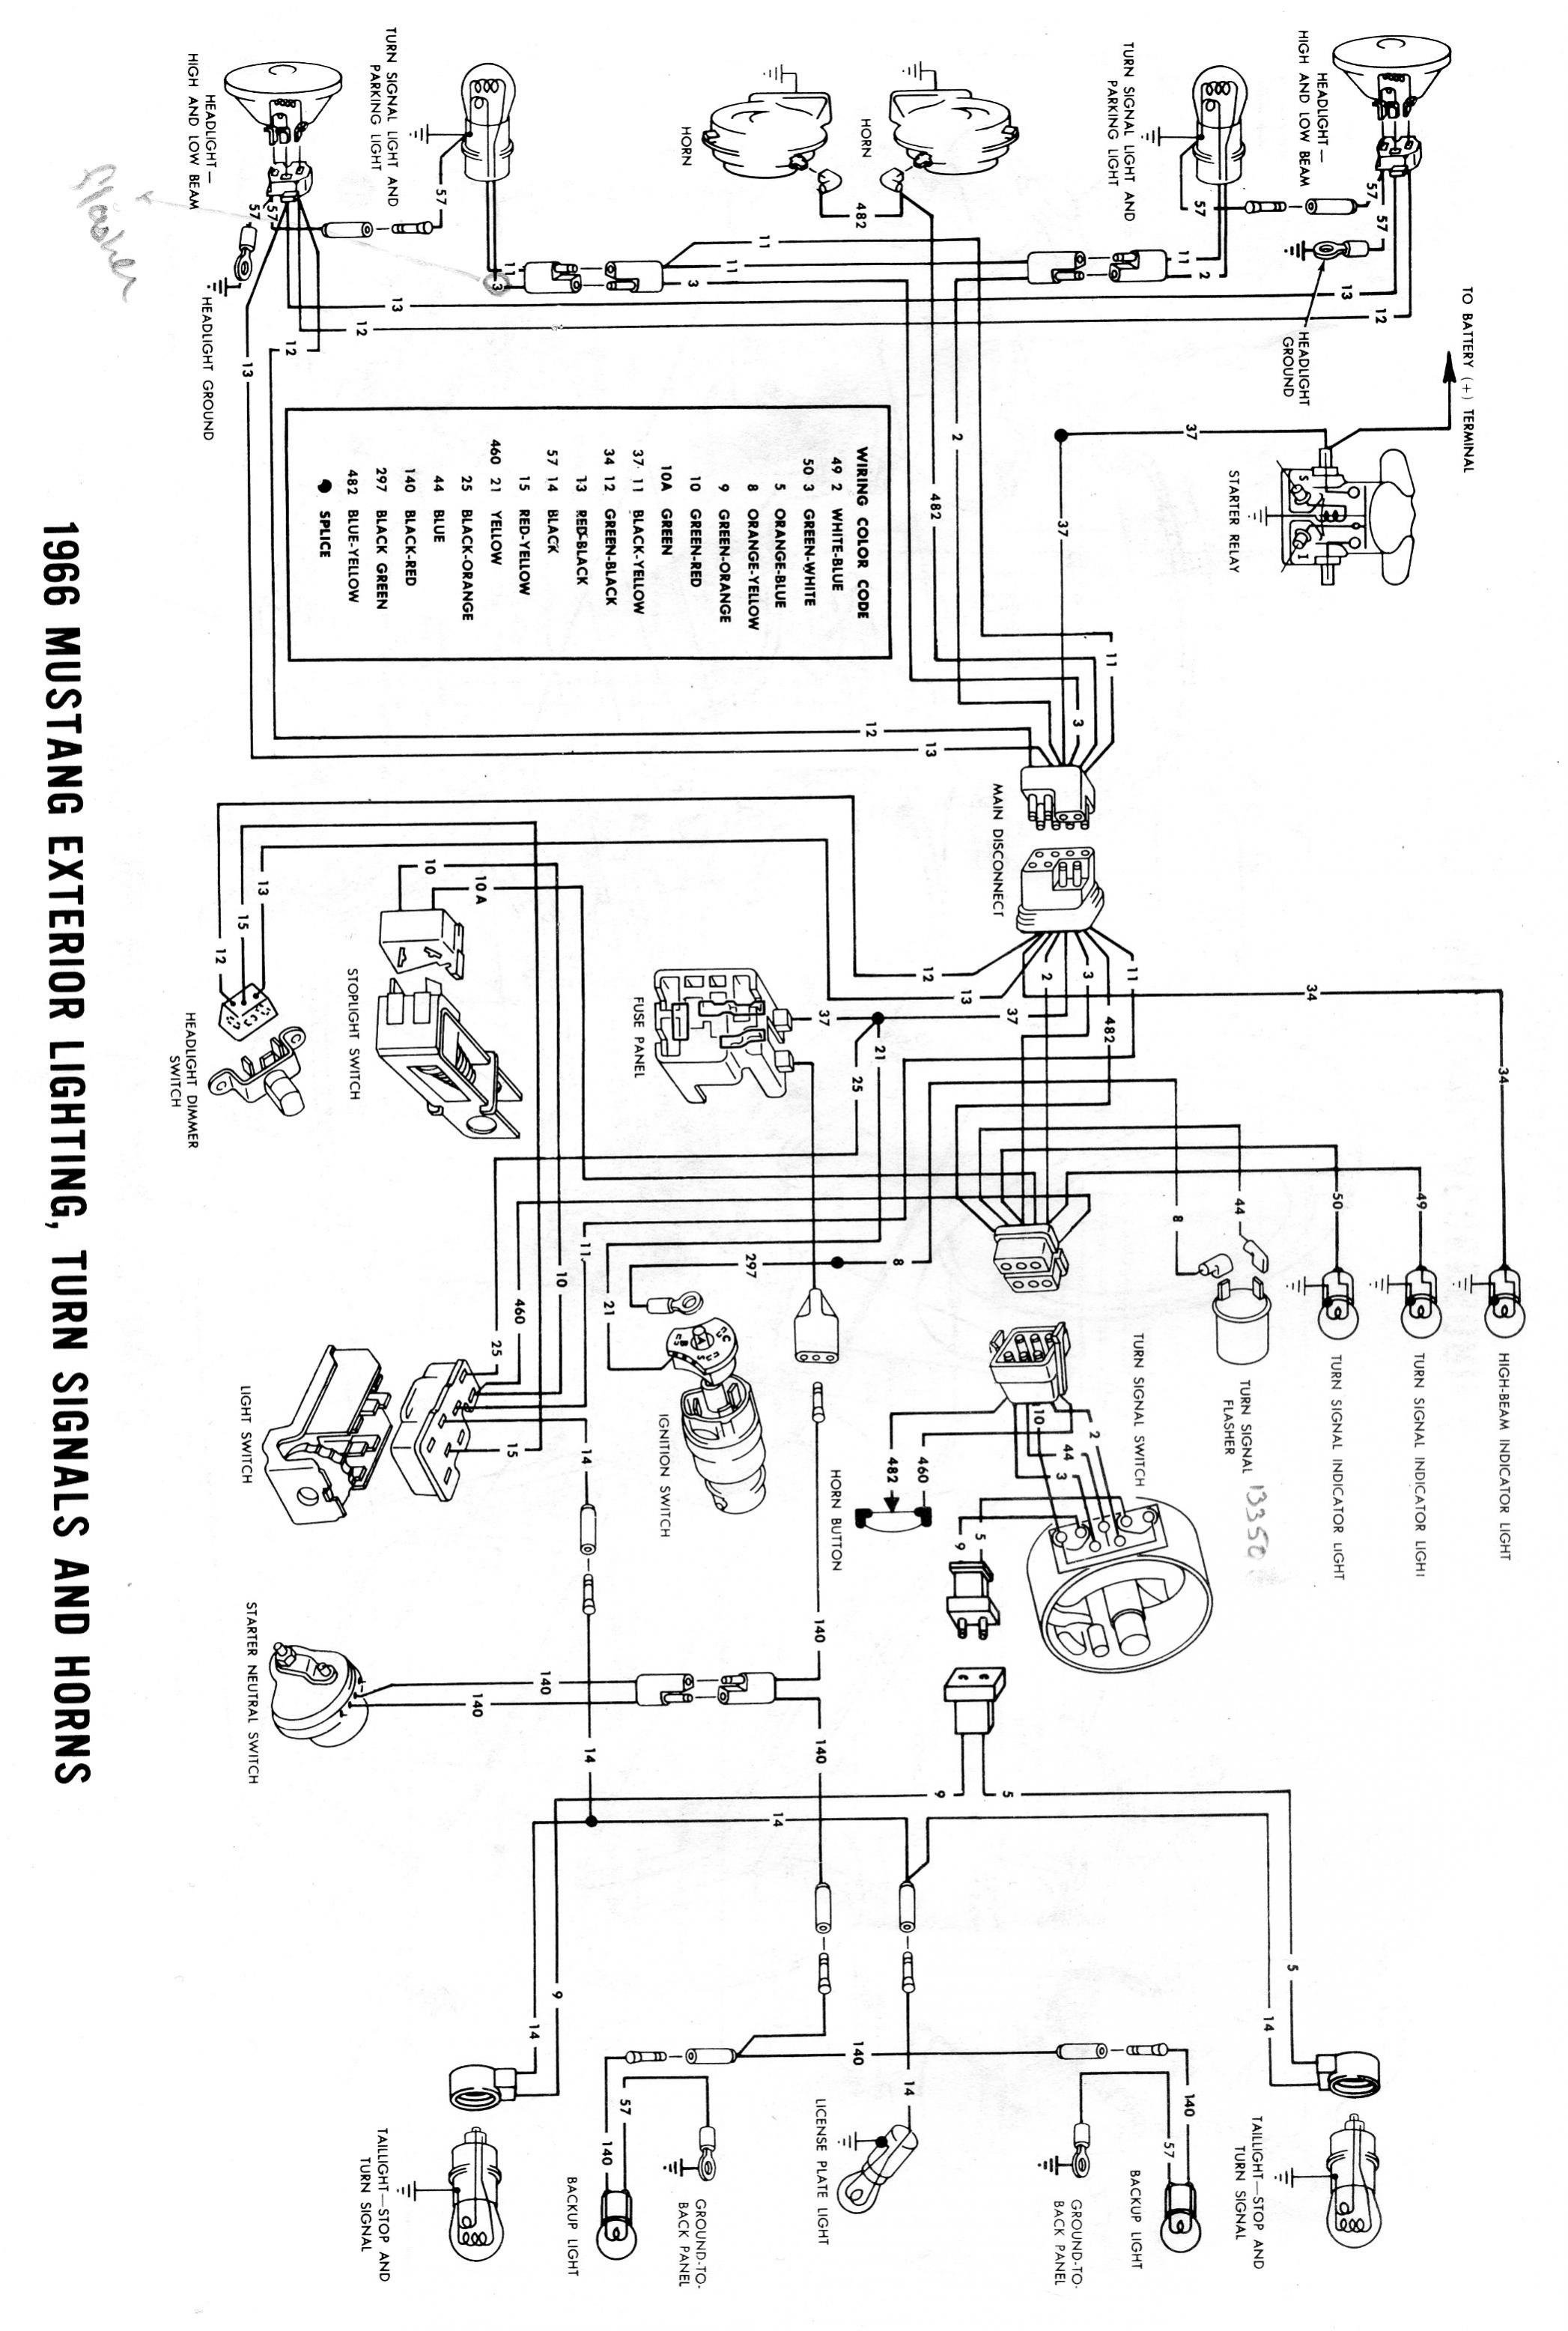 1966 MustangEmergency flashers come on with turn indicator Ford – Exterior Lights Wiring Diagram 1996 Ford